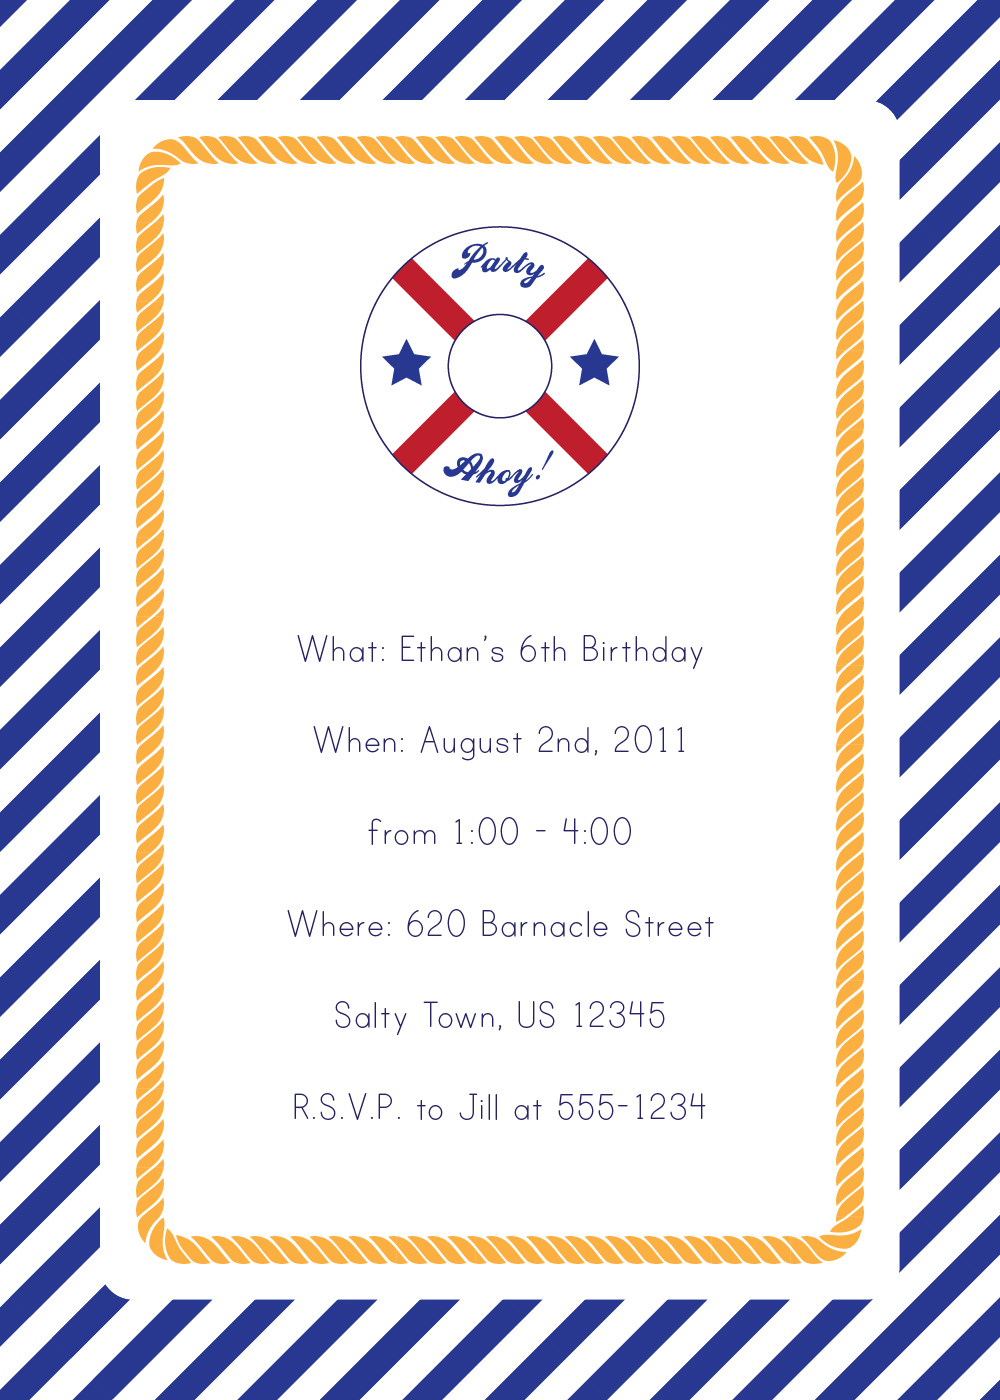 7 Best Images of Free Printable Nautical Invitations - Nautical Party Printables Free, Free ...